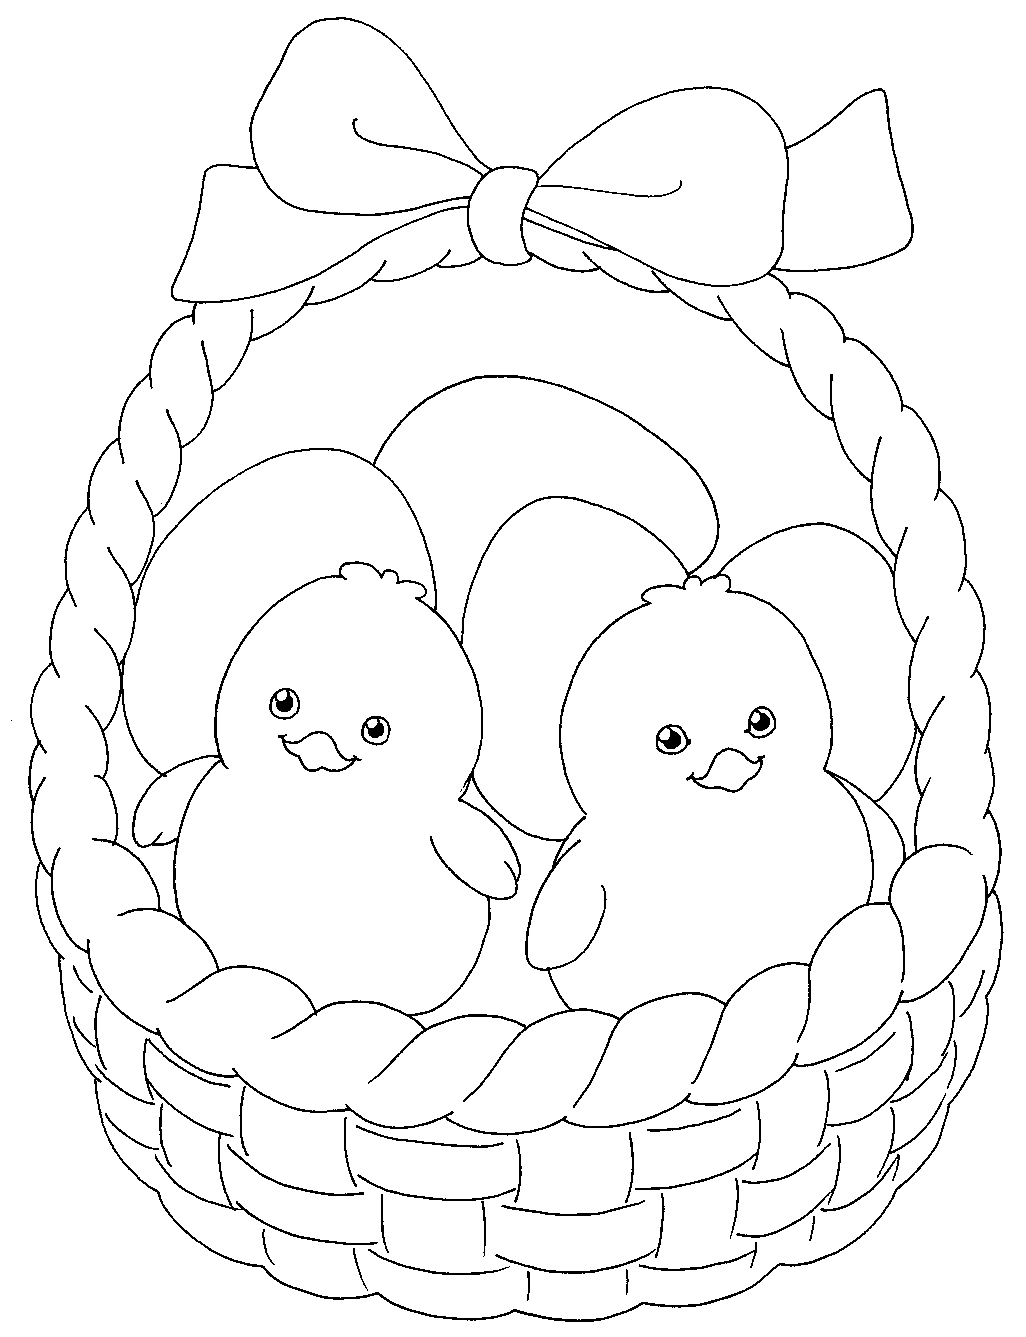 easter chicks coloring pages - photo#1